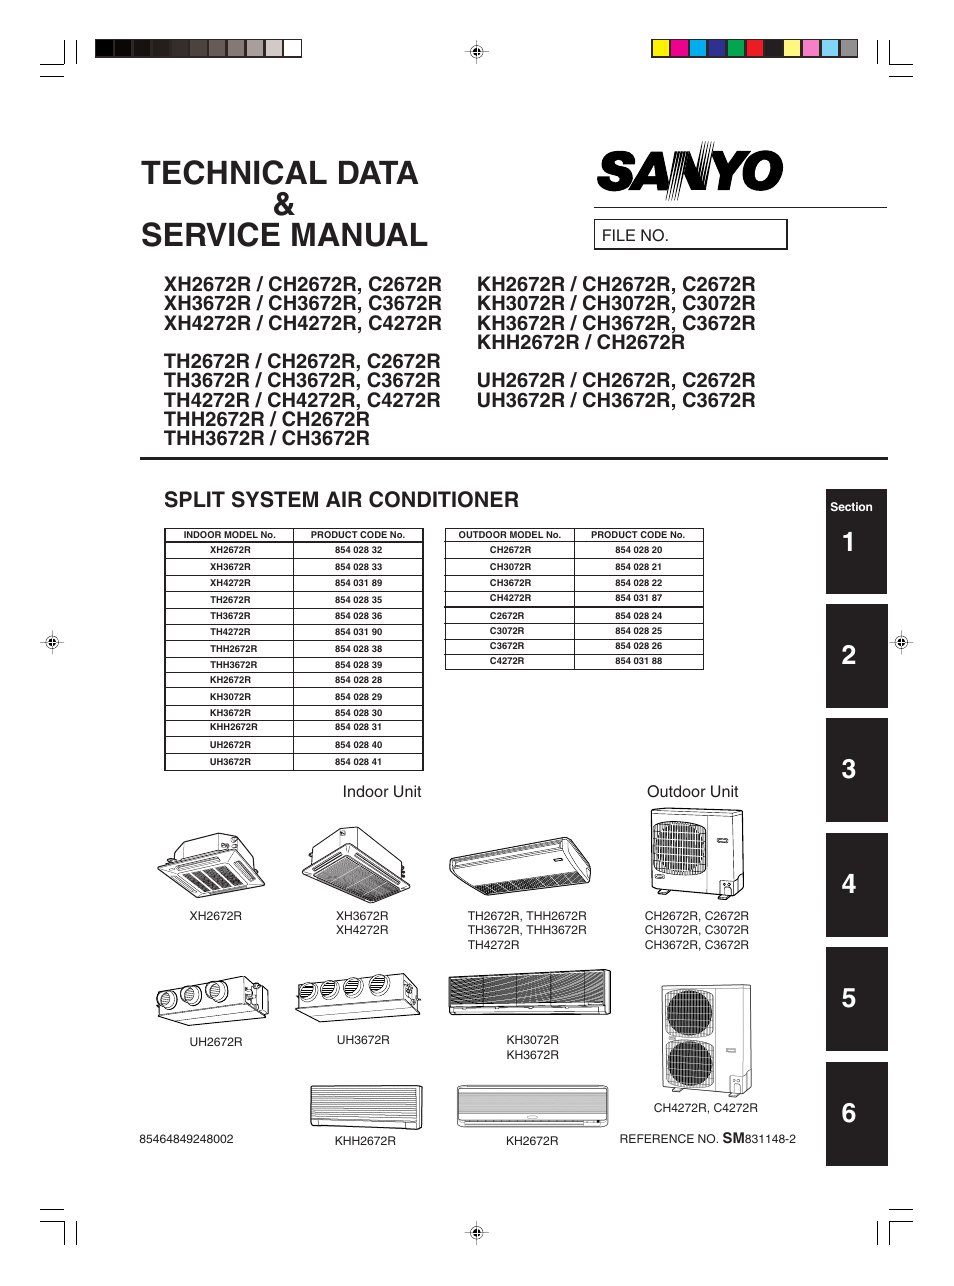 Sanyo Khh2672r Ch2672r User Manual 180 Pages Also border=